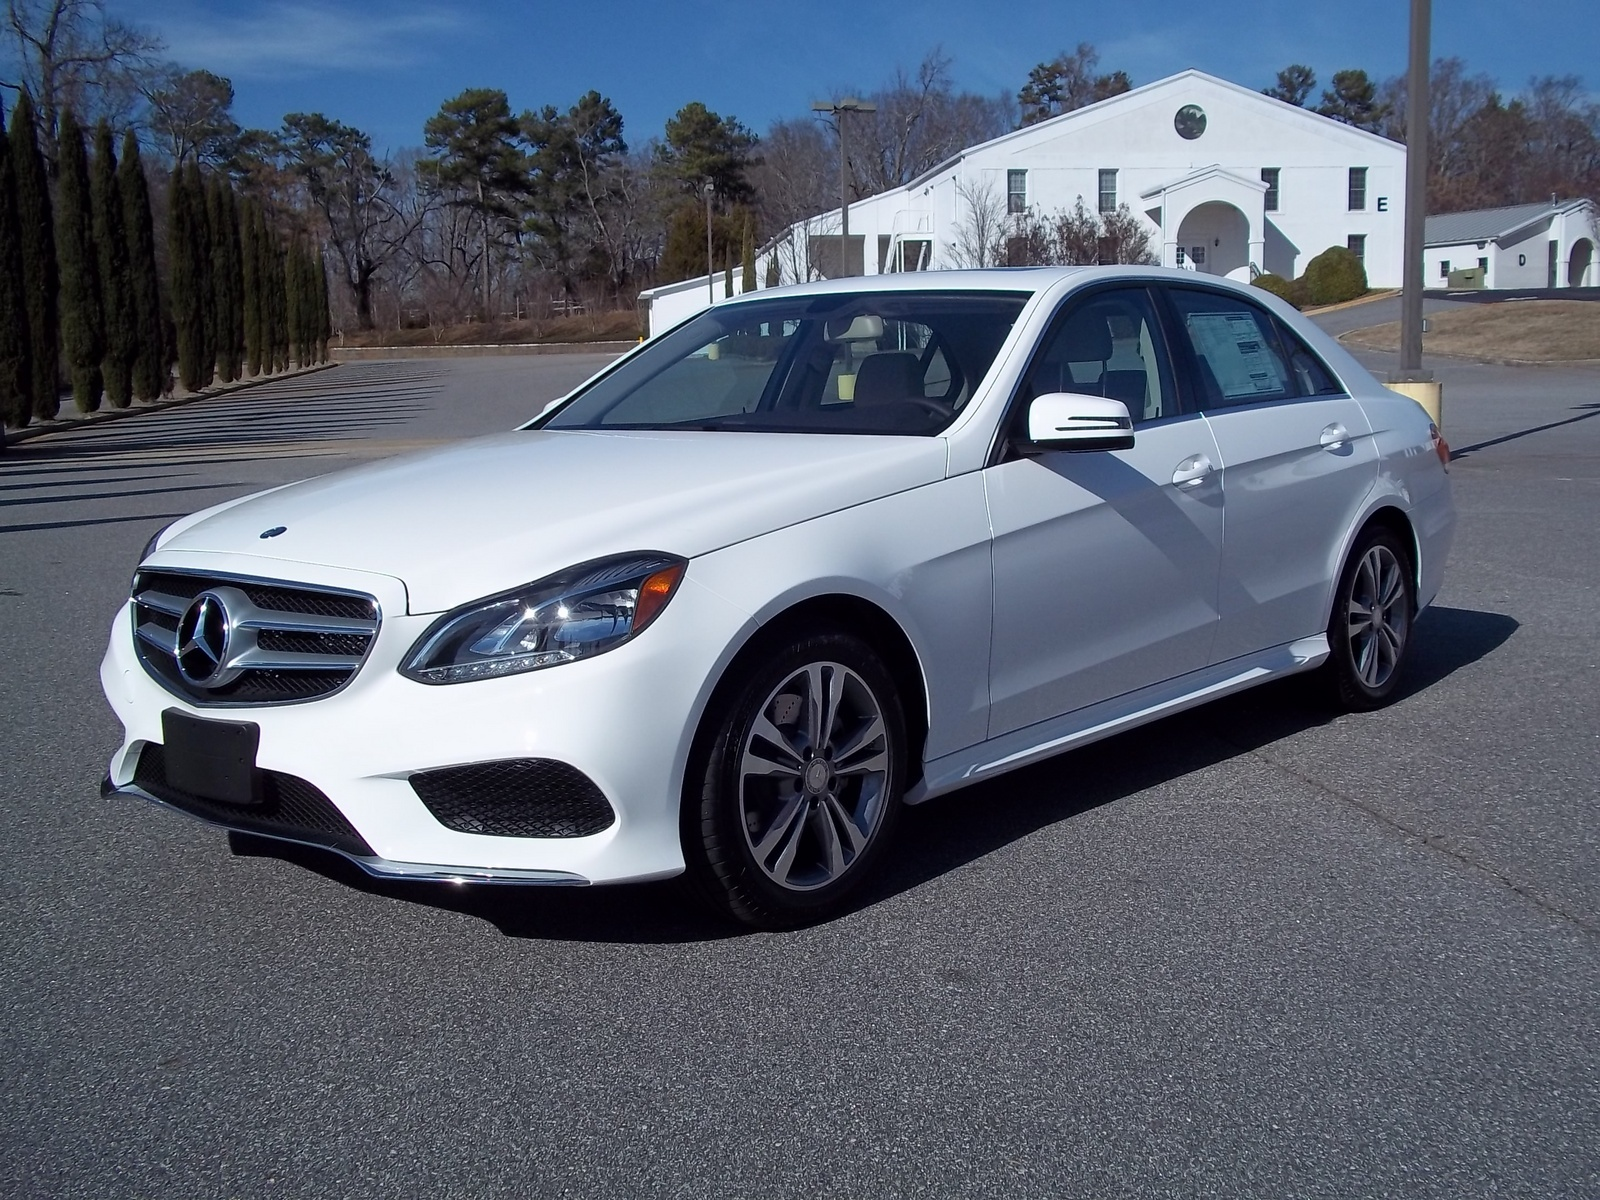 New 2015 2016 mercedes benz e class for sale cargurus for New mercedes benz s class 2015